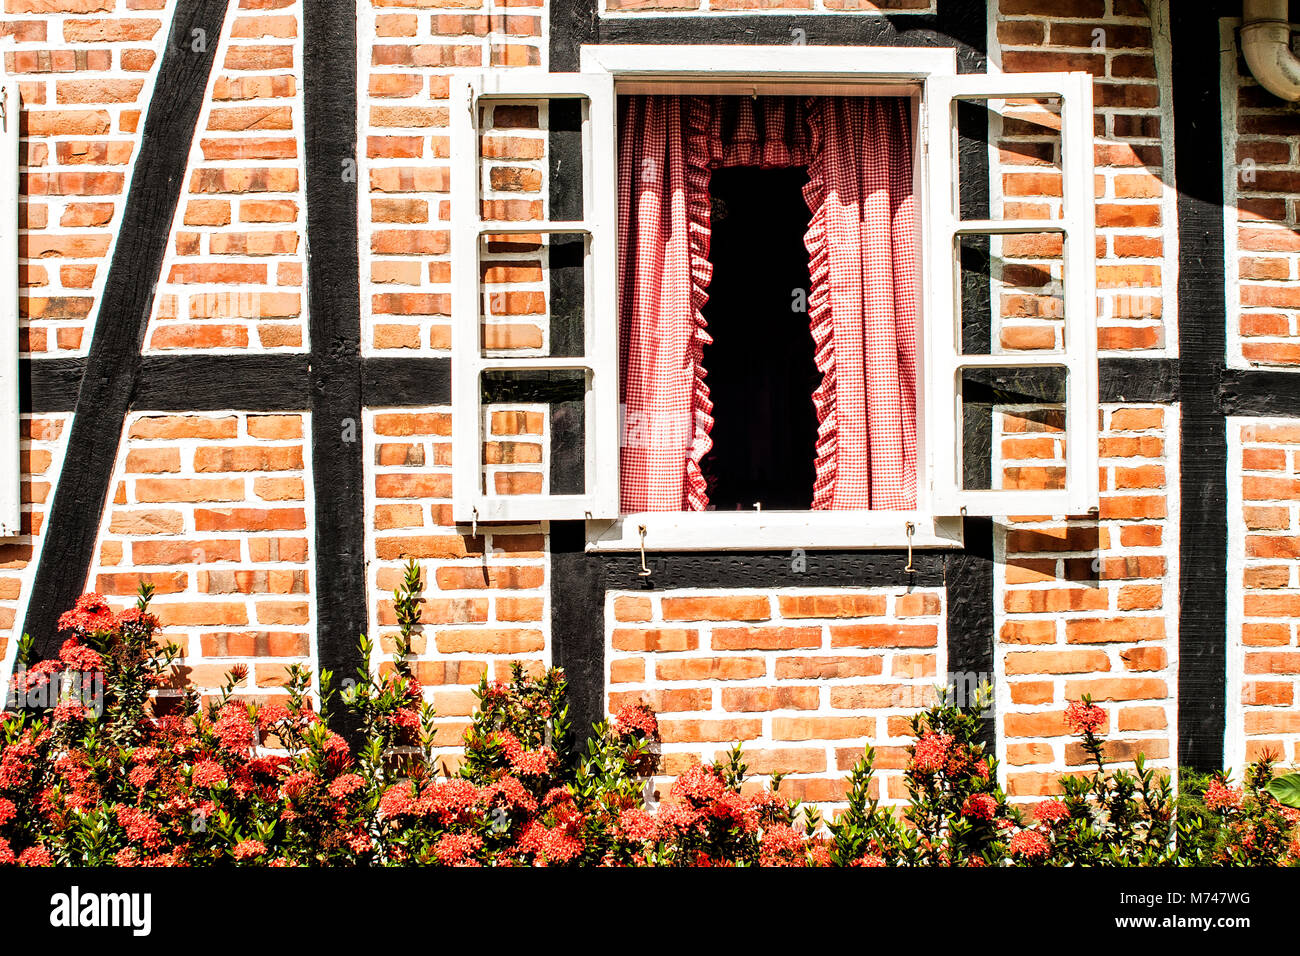 Detail of a timber framed house brought from Germany to be rebuit in Brazil. Blumenau, Santa Catarina, Brazil. - Stock Image